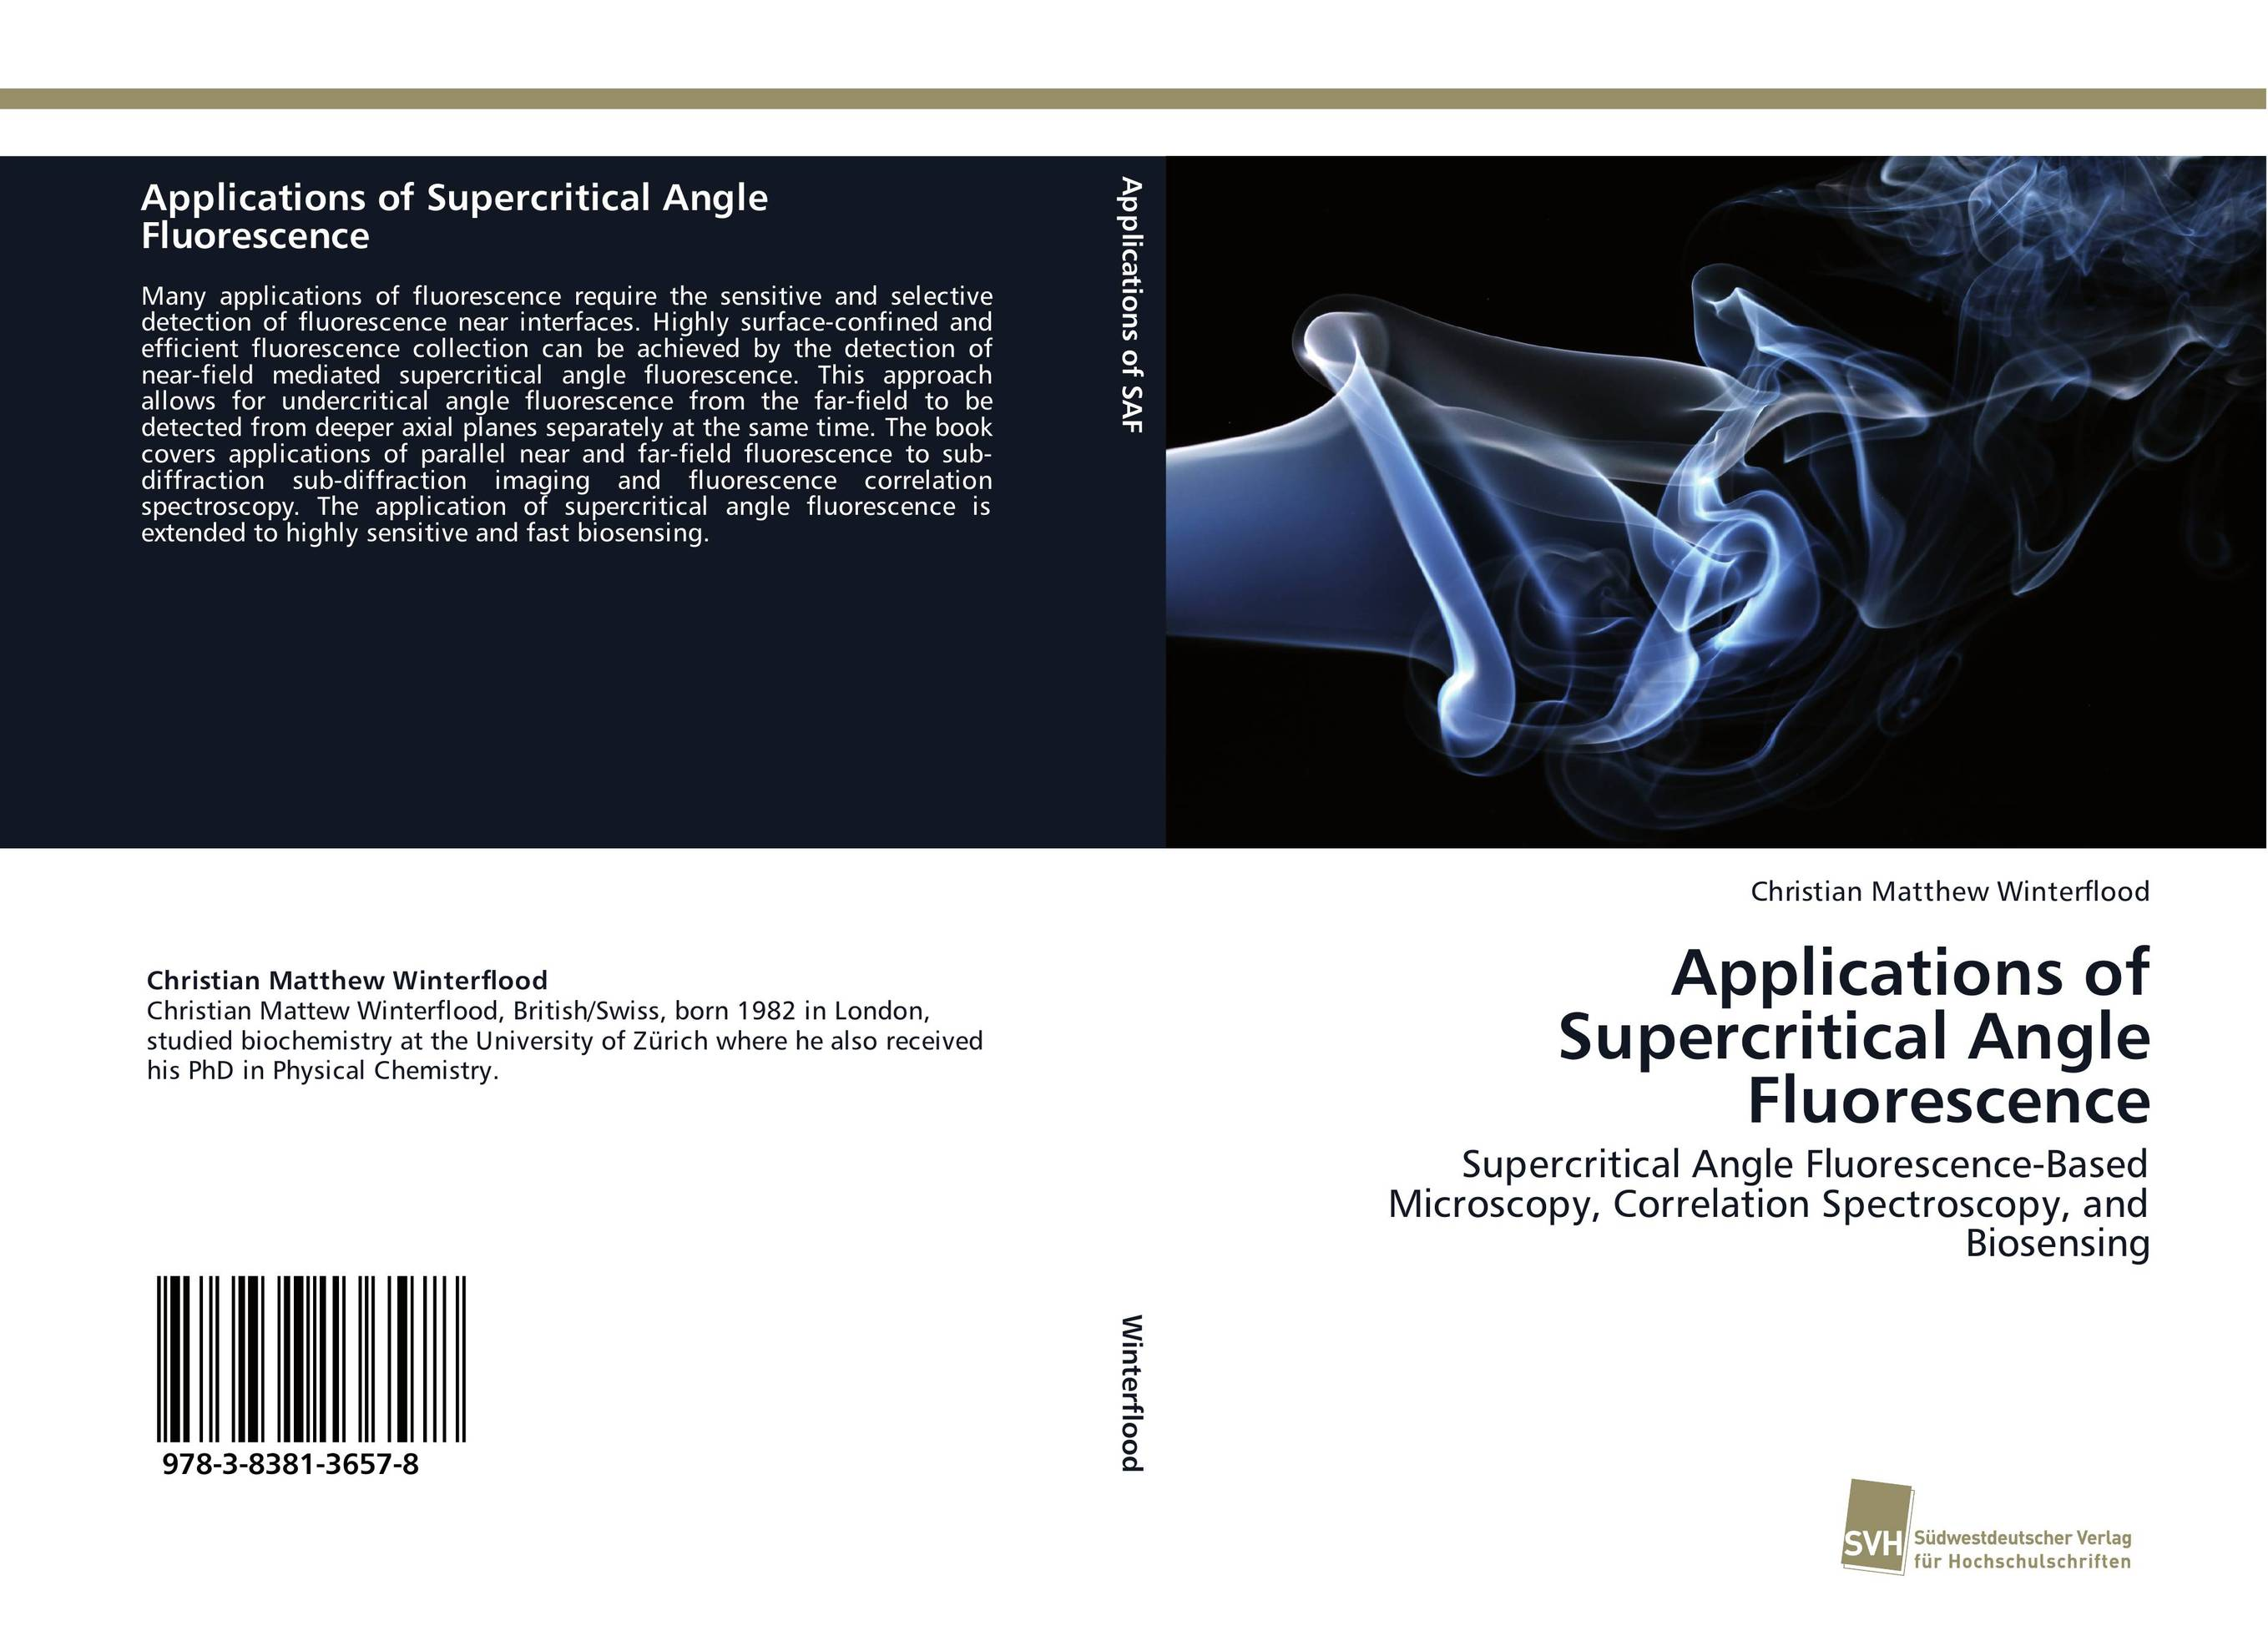 Applications of Supercritical Angle Fluorescence microwave imaging for security applications